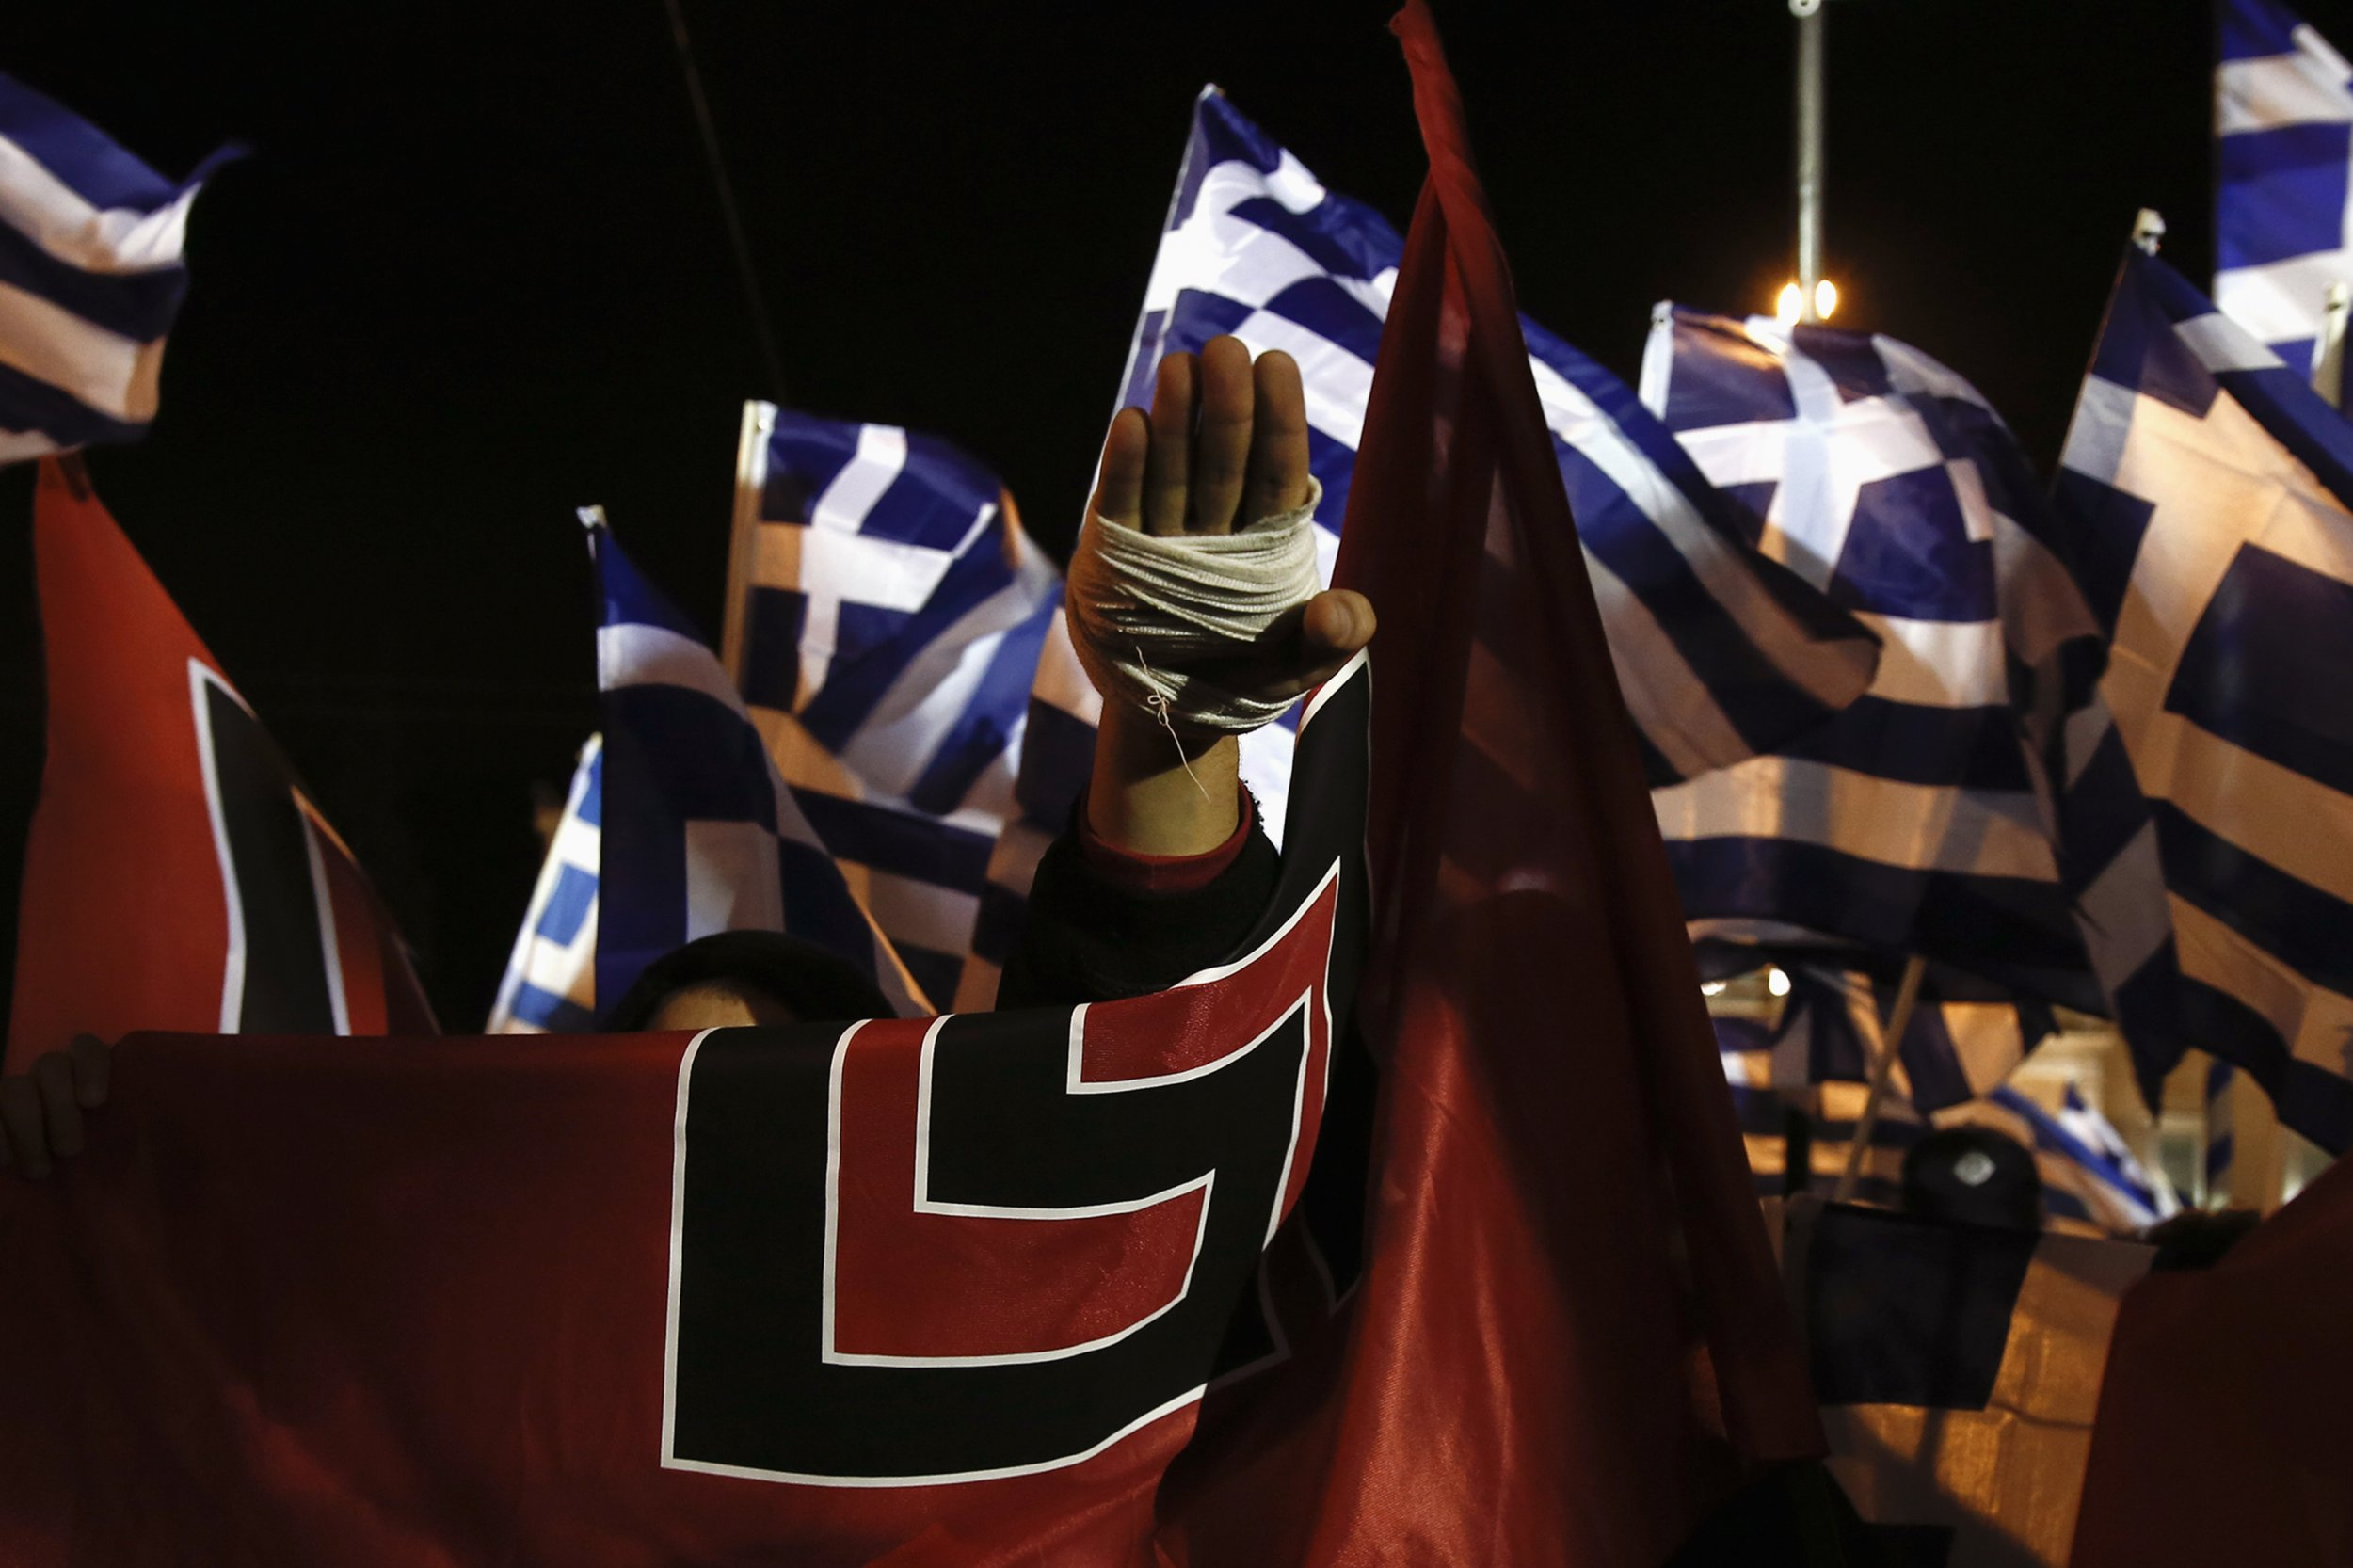 A supporter of Greece's far-right Golden Dawn party salutes in a Nazi style